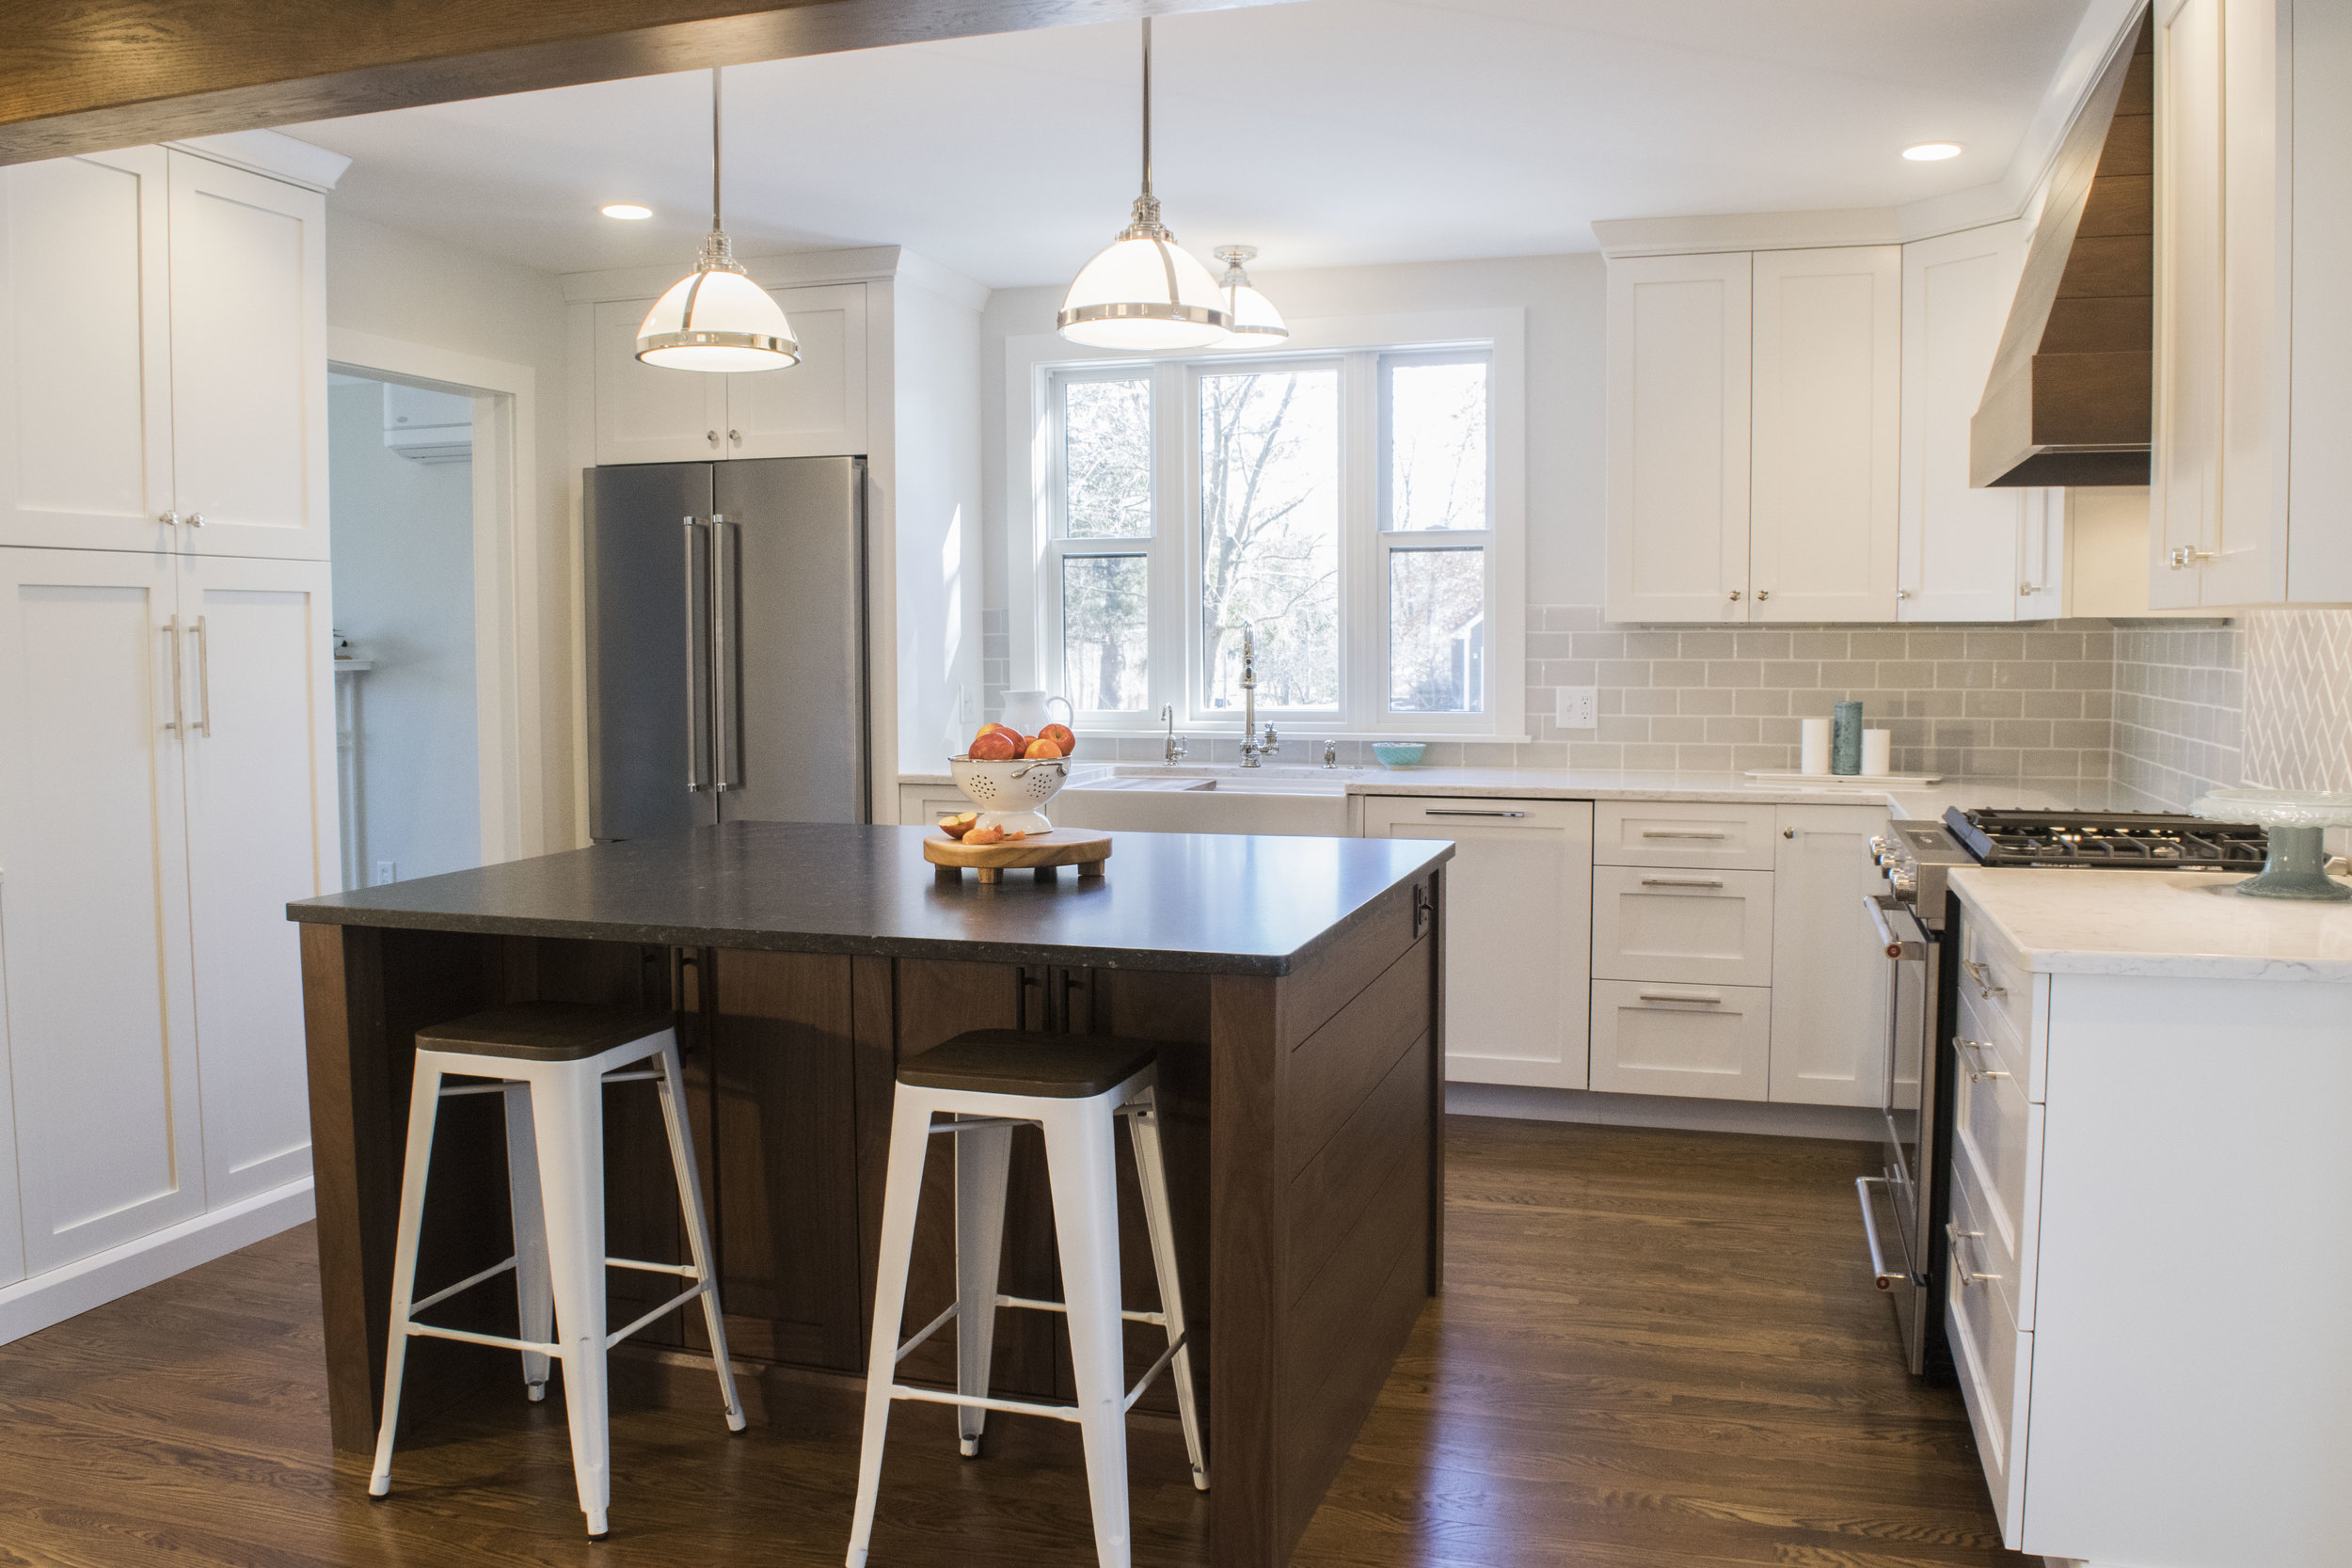 Home #9:2969 Newport Rd. Ann Arbor   Interior Remodel with Kitchen Relocation